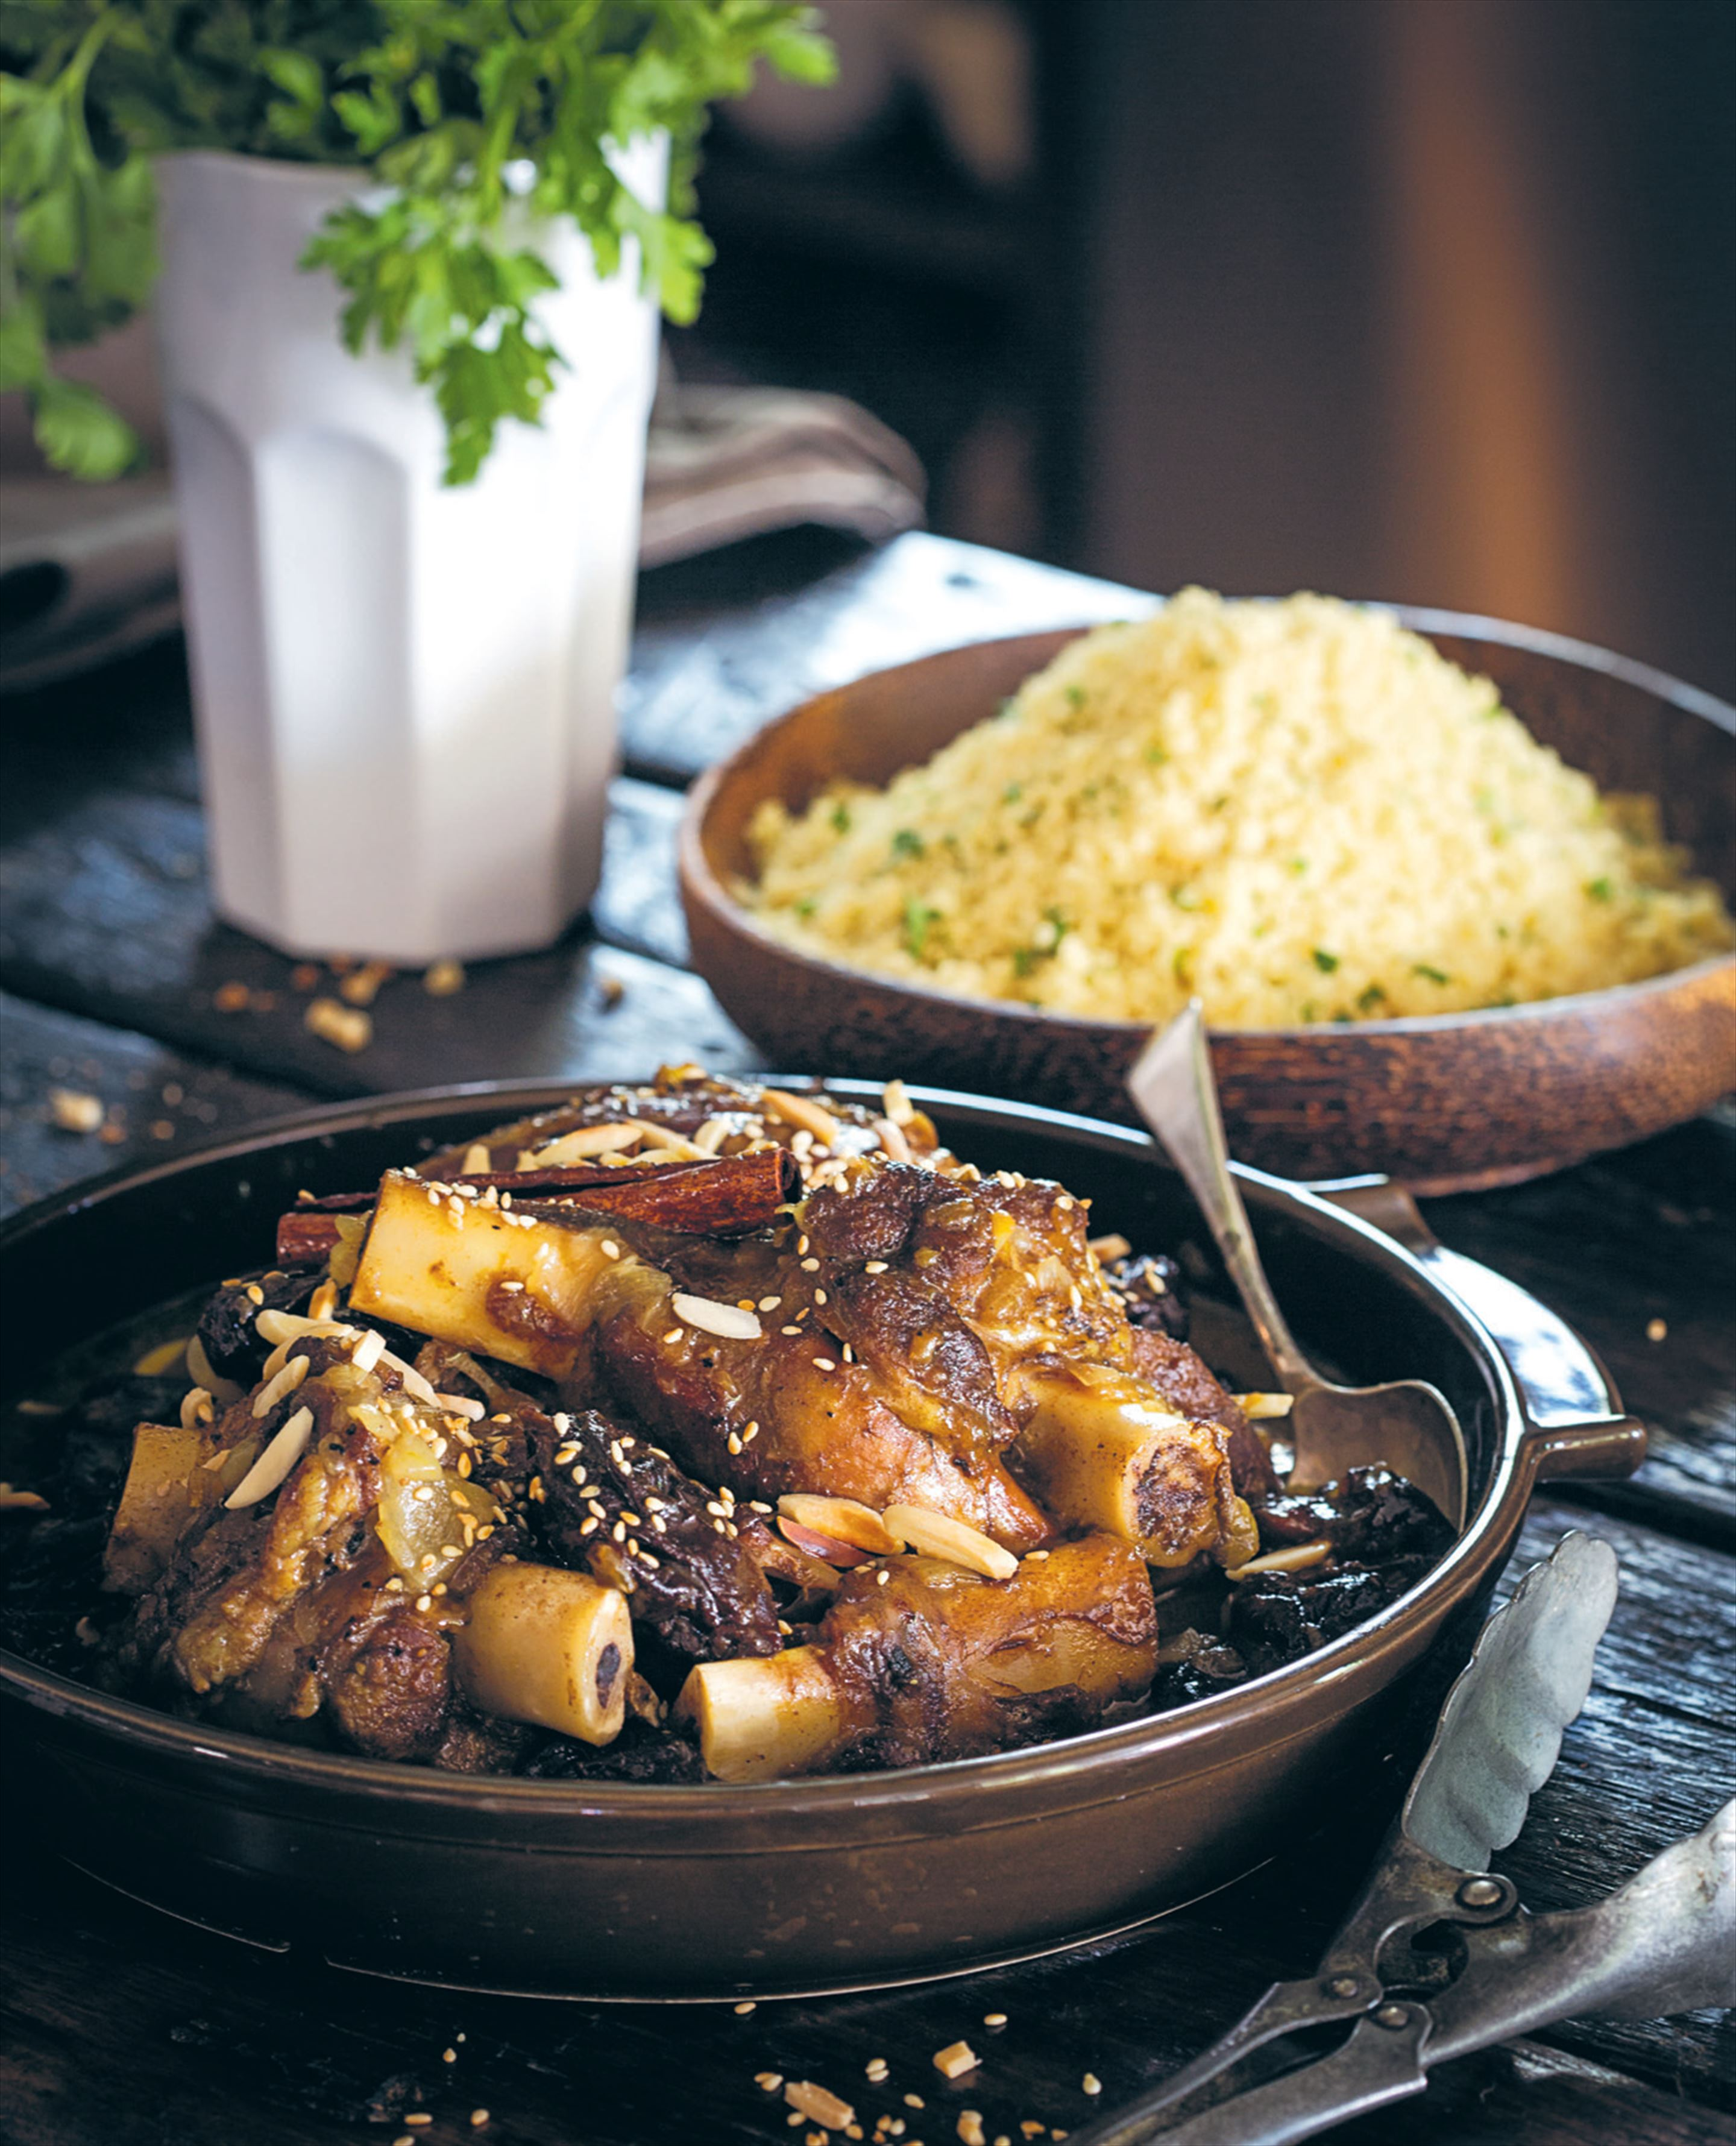 Lamb tagine with prunes and toasted almonds